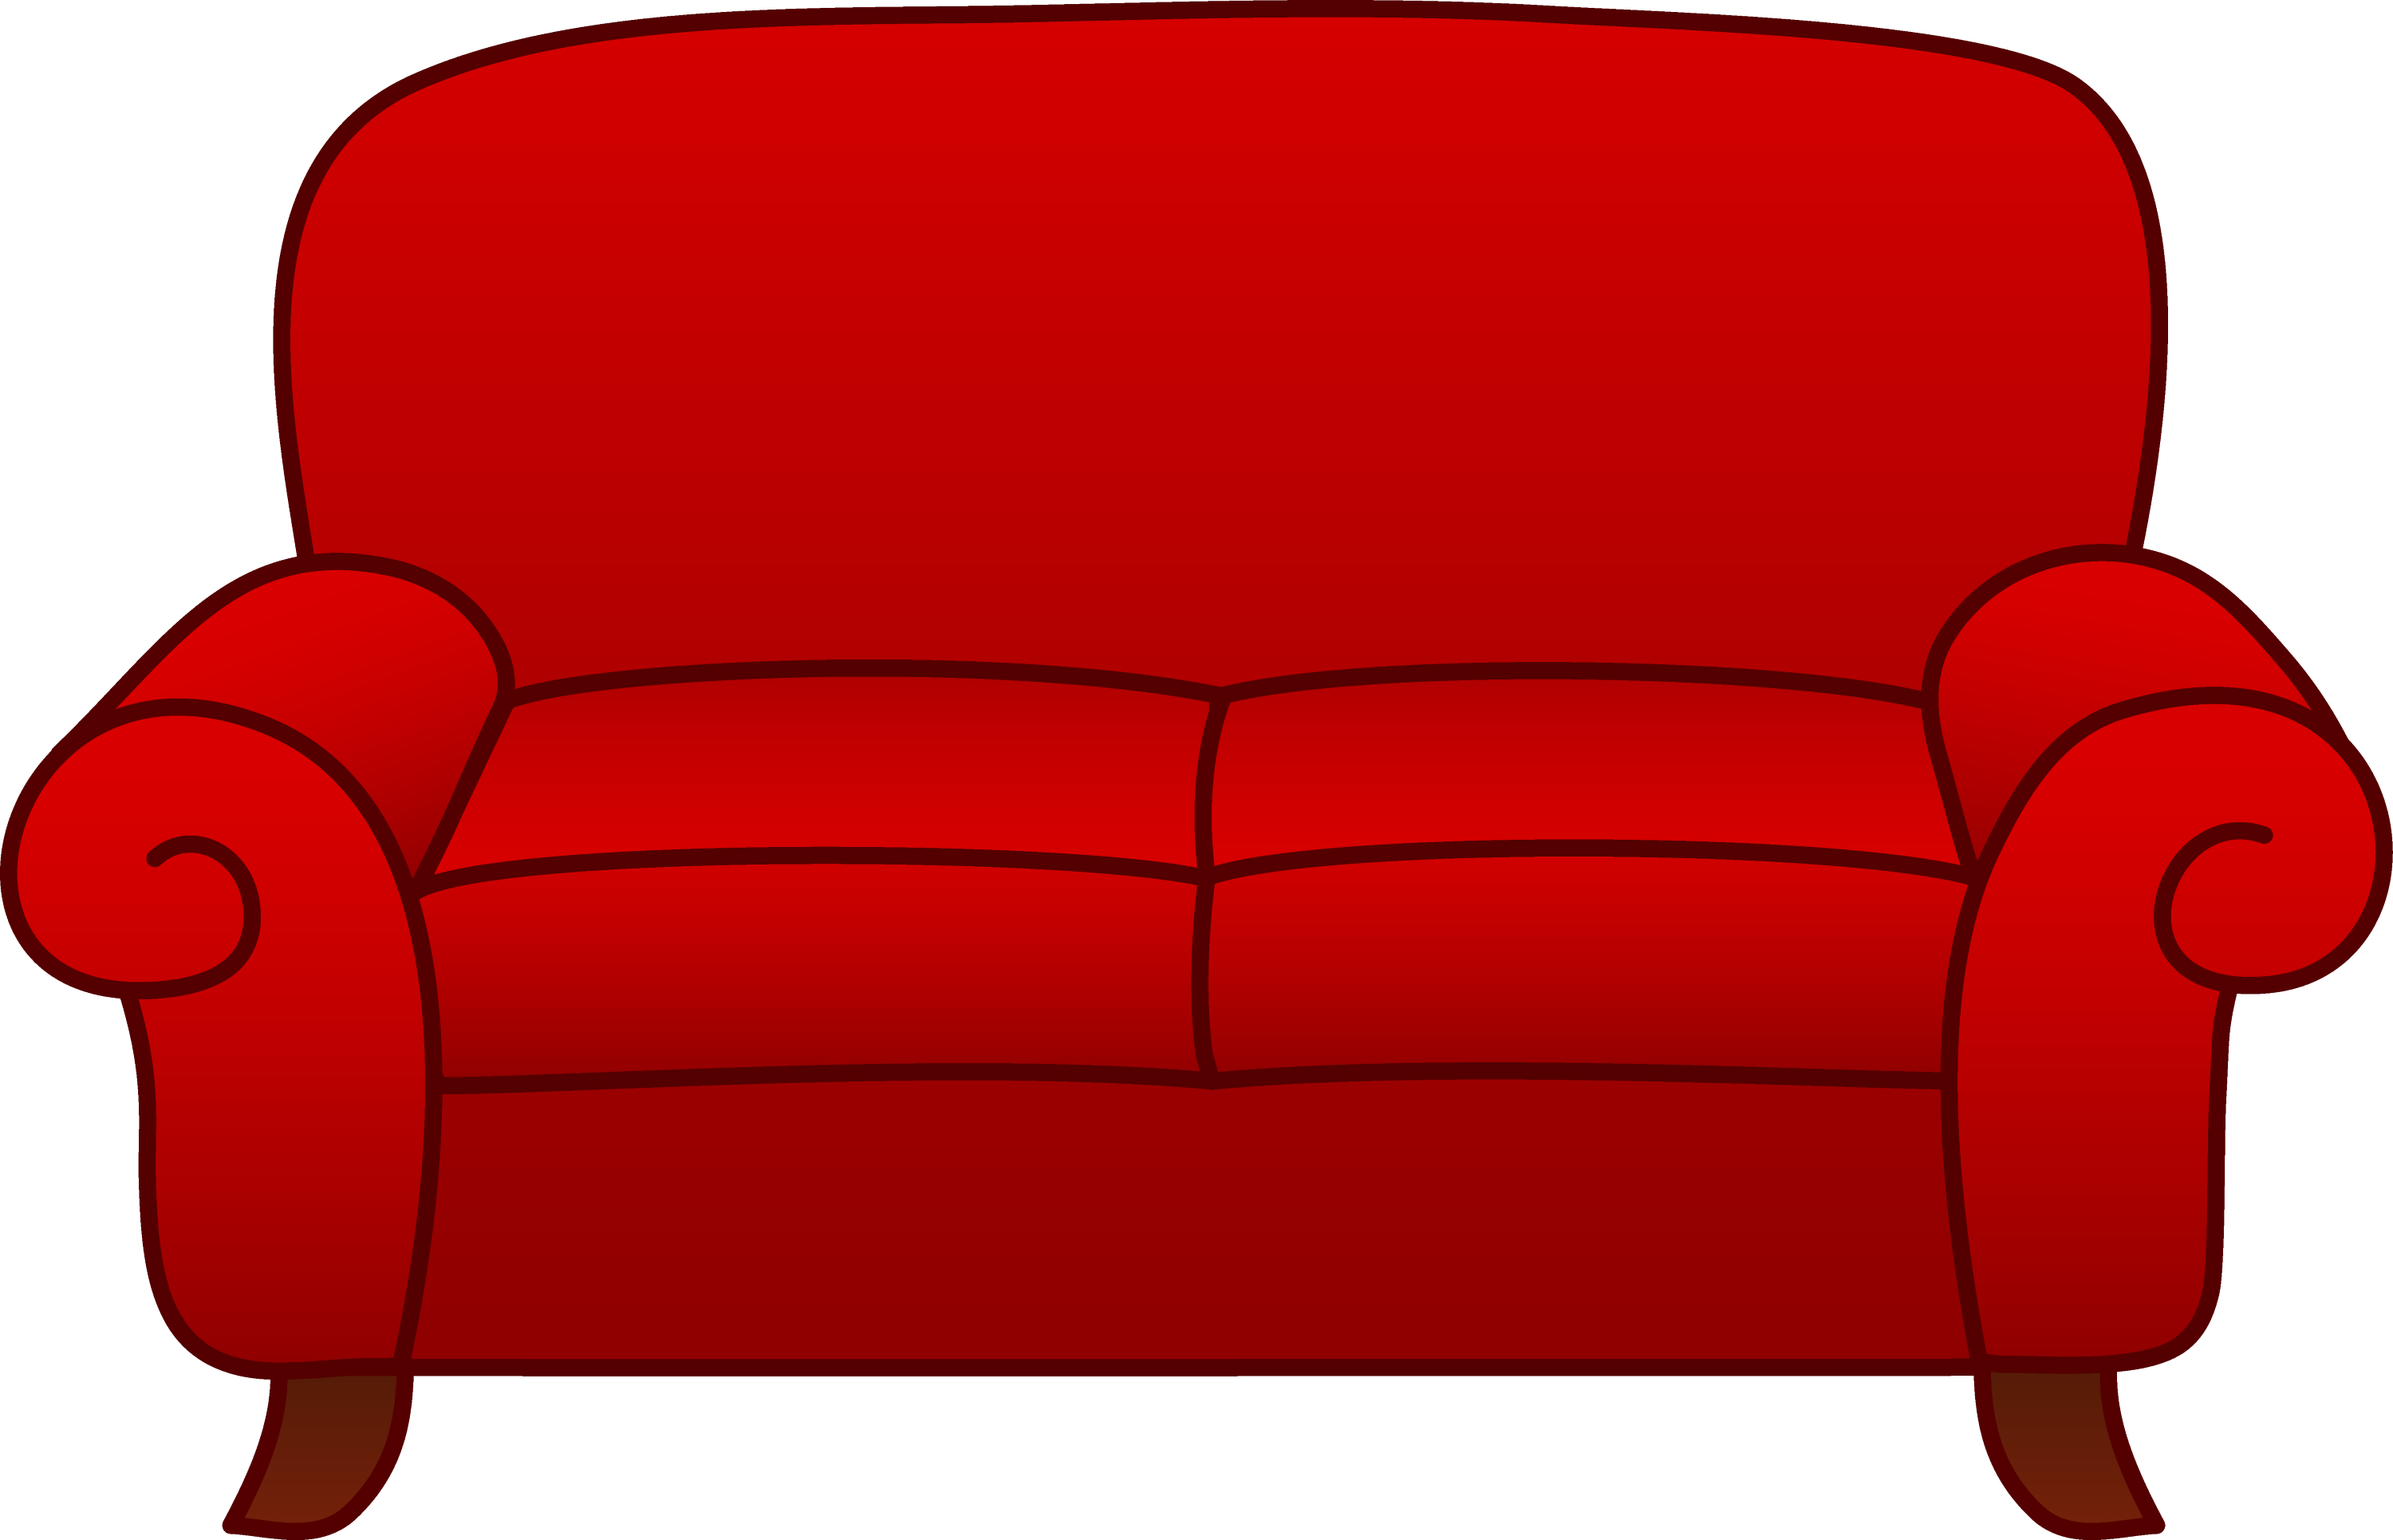 Http Sweetclipart Com Red Living Room Sofa 2023